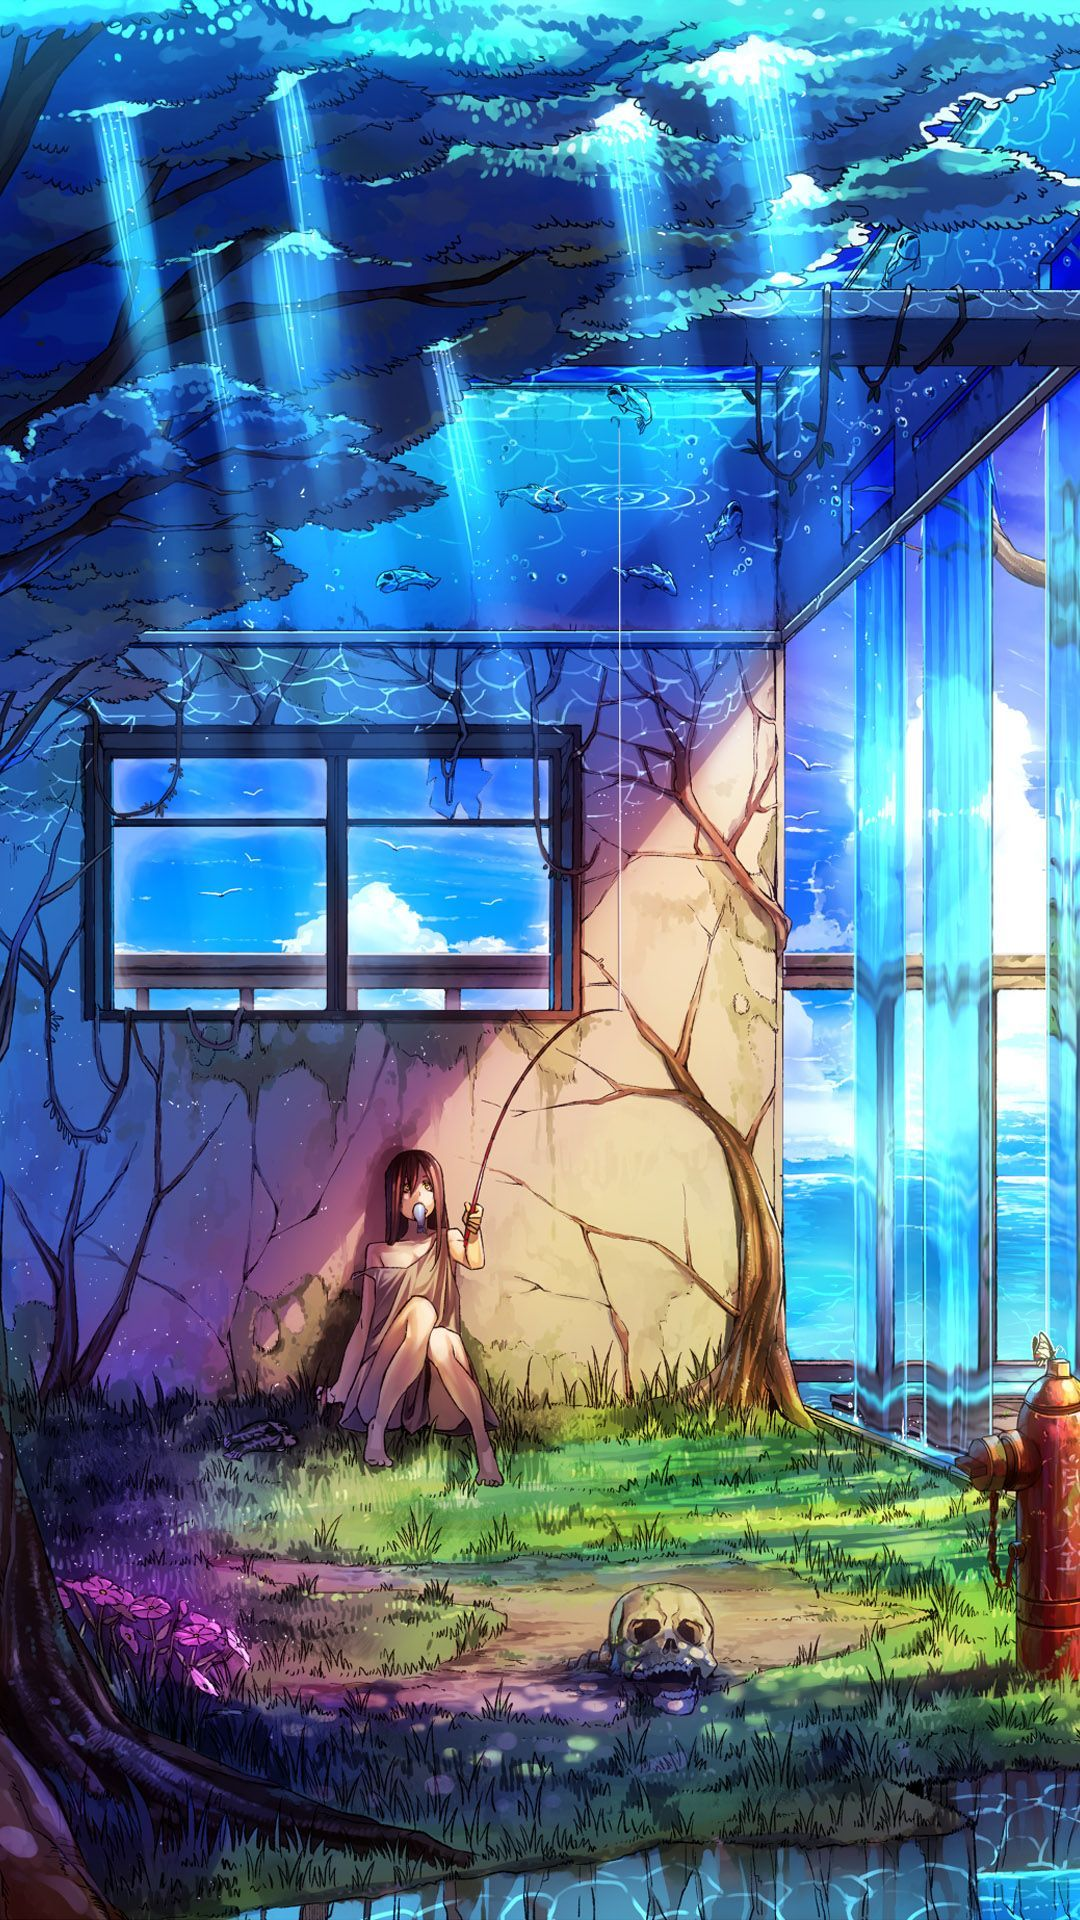 Upside down fishing anime - Best htc one wallpapers, free and easy to download